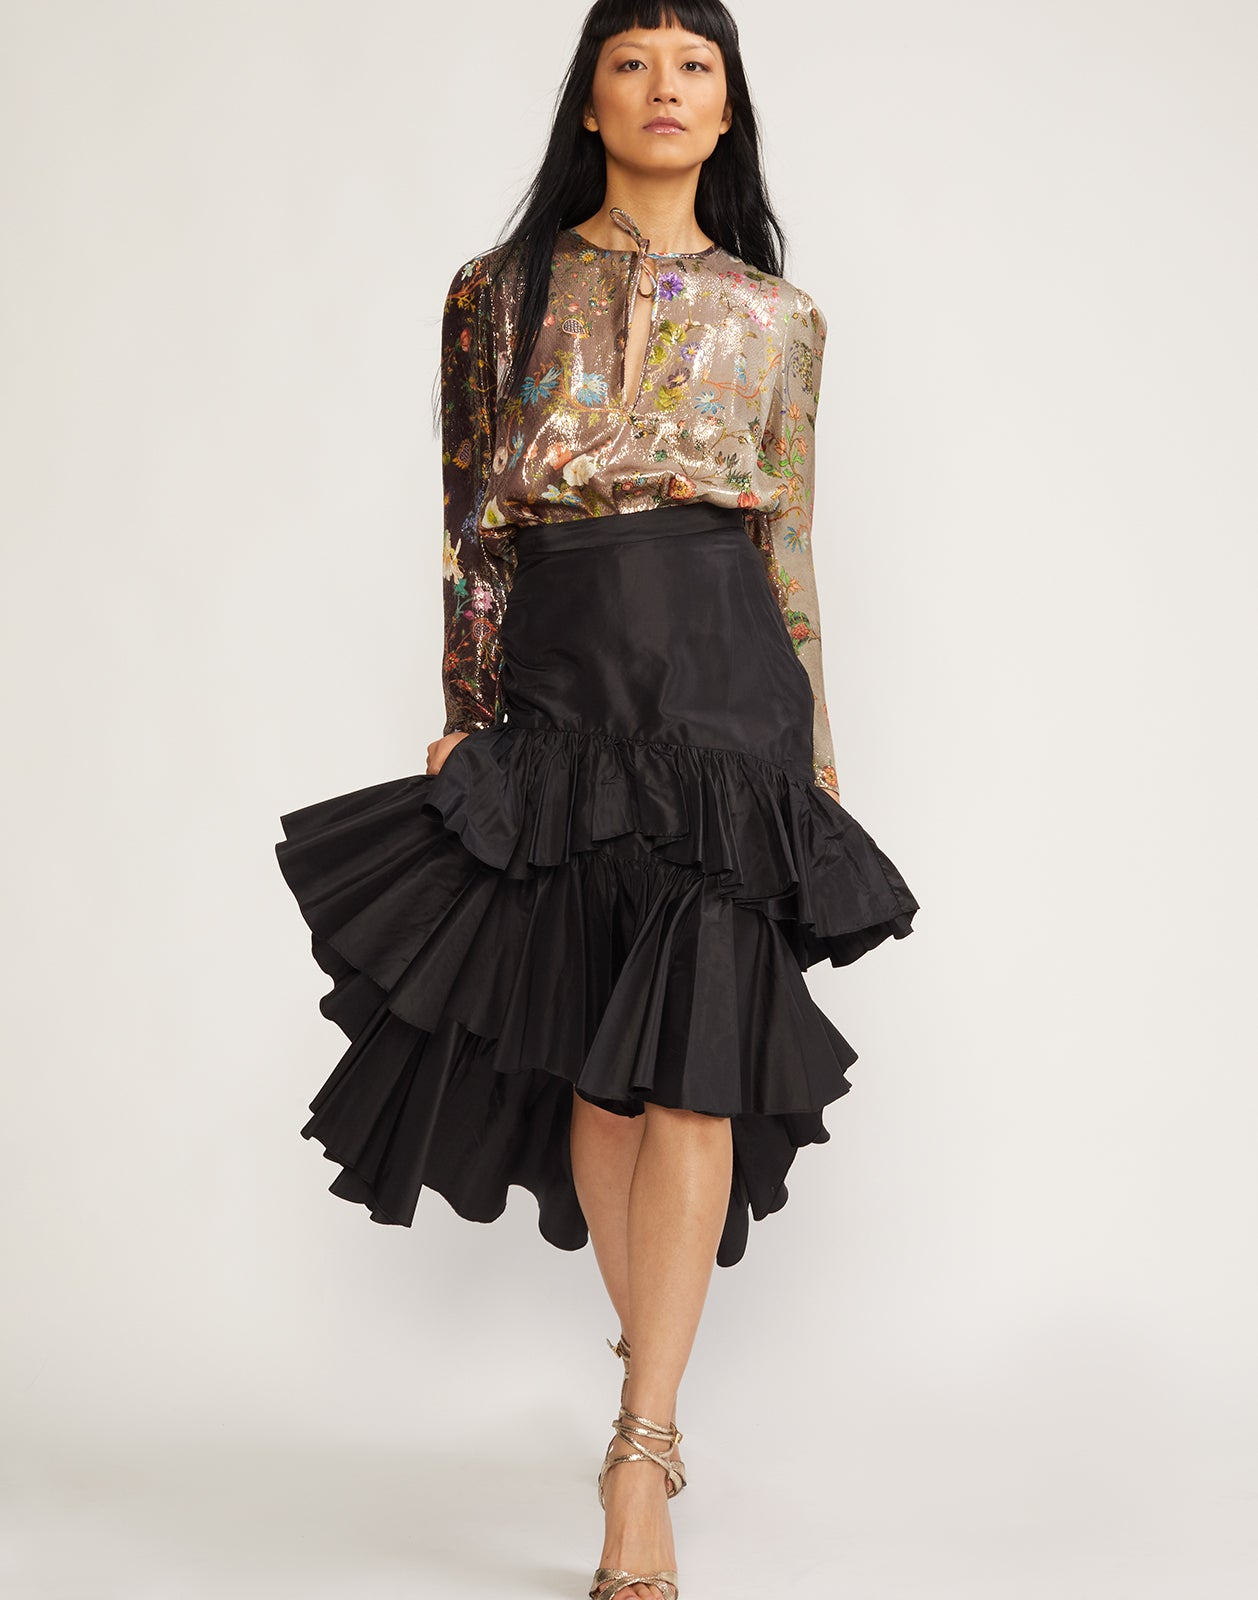 Front view of model wearing the Camila tiered ruffle skirt in black.